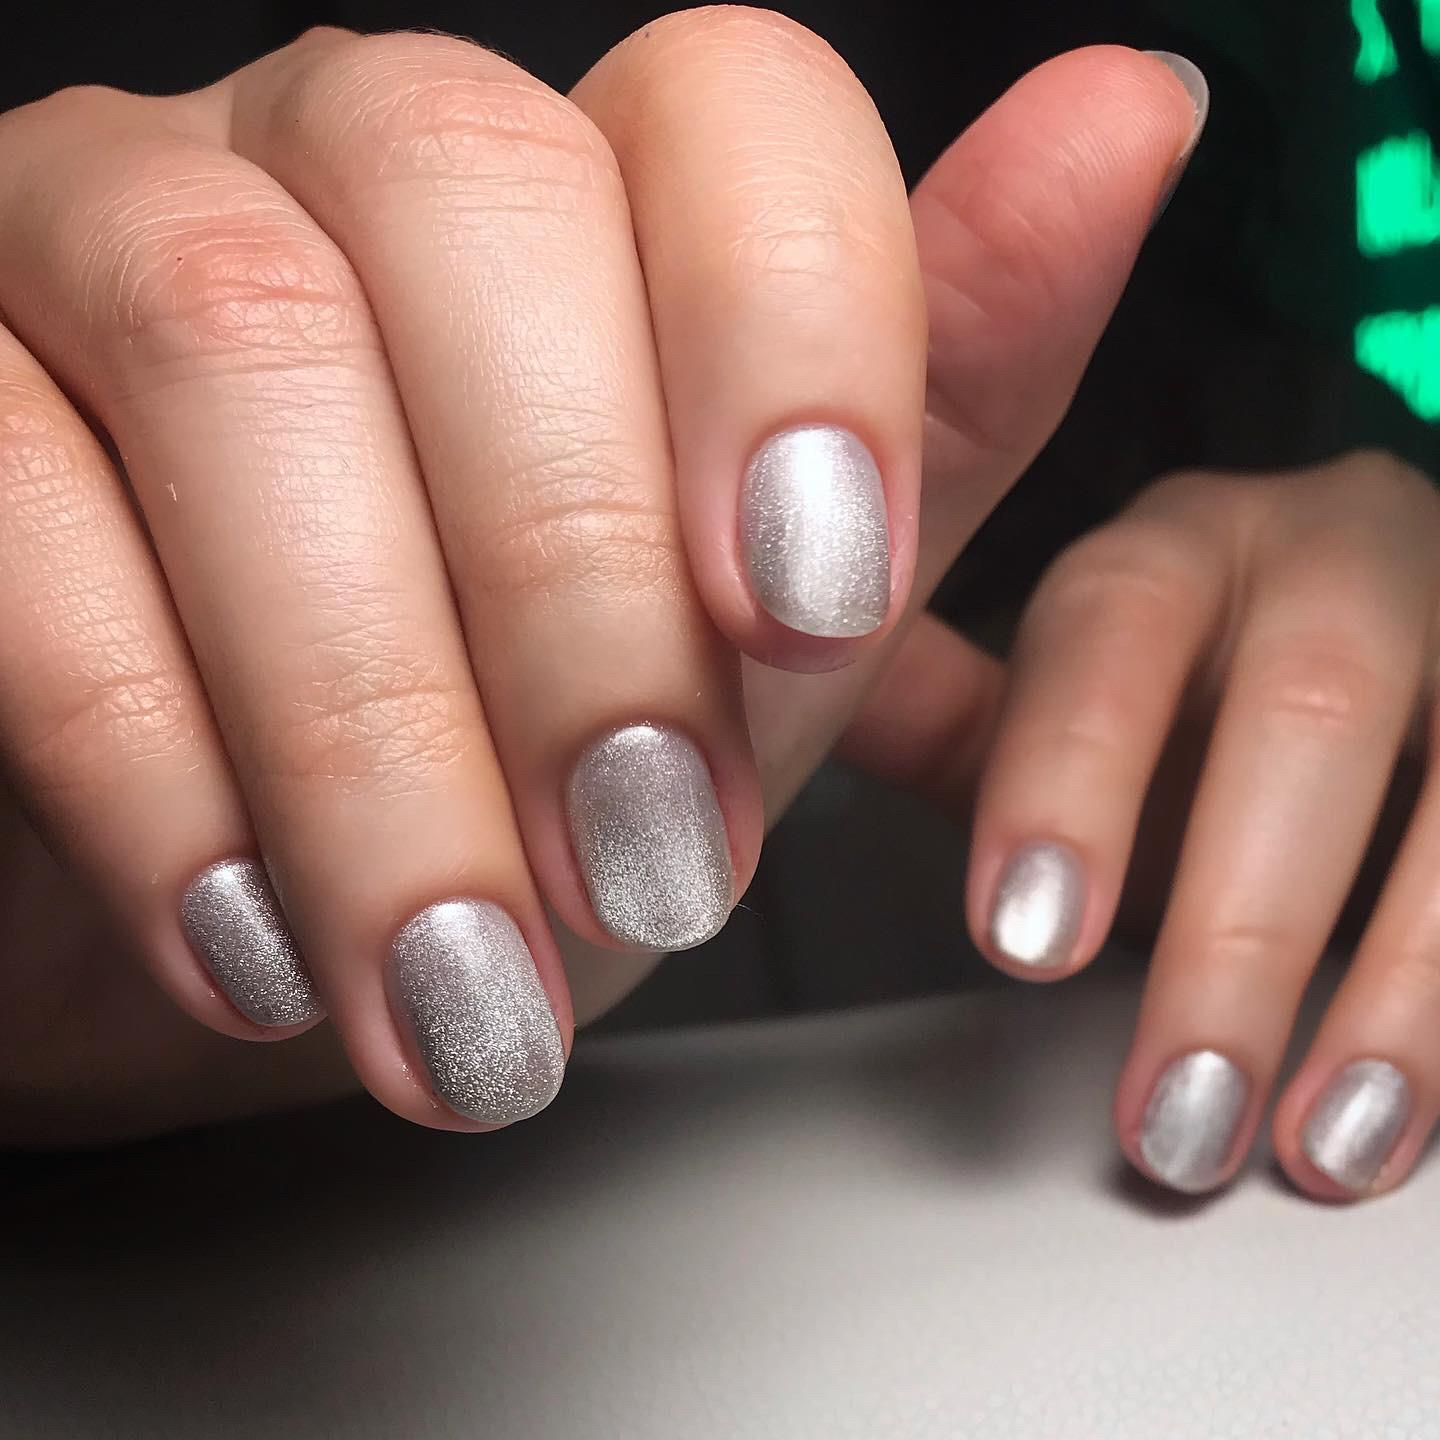 Sparkly nails by Le diX Paris